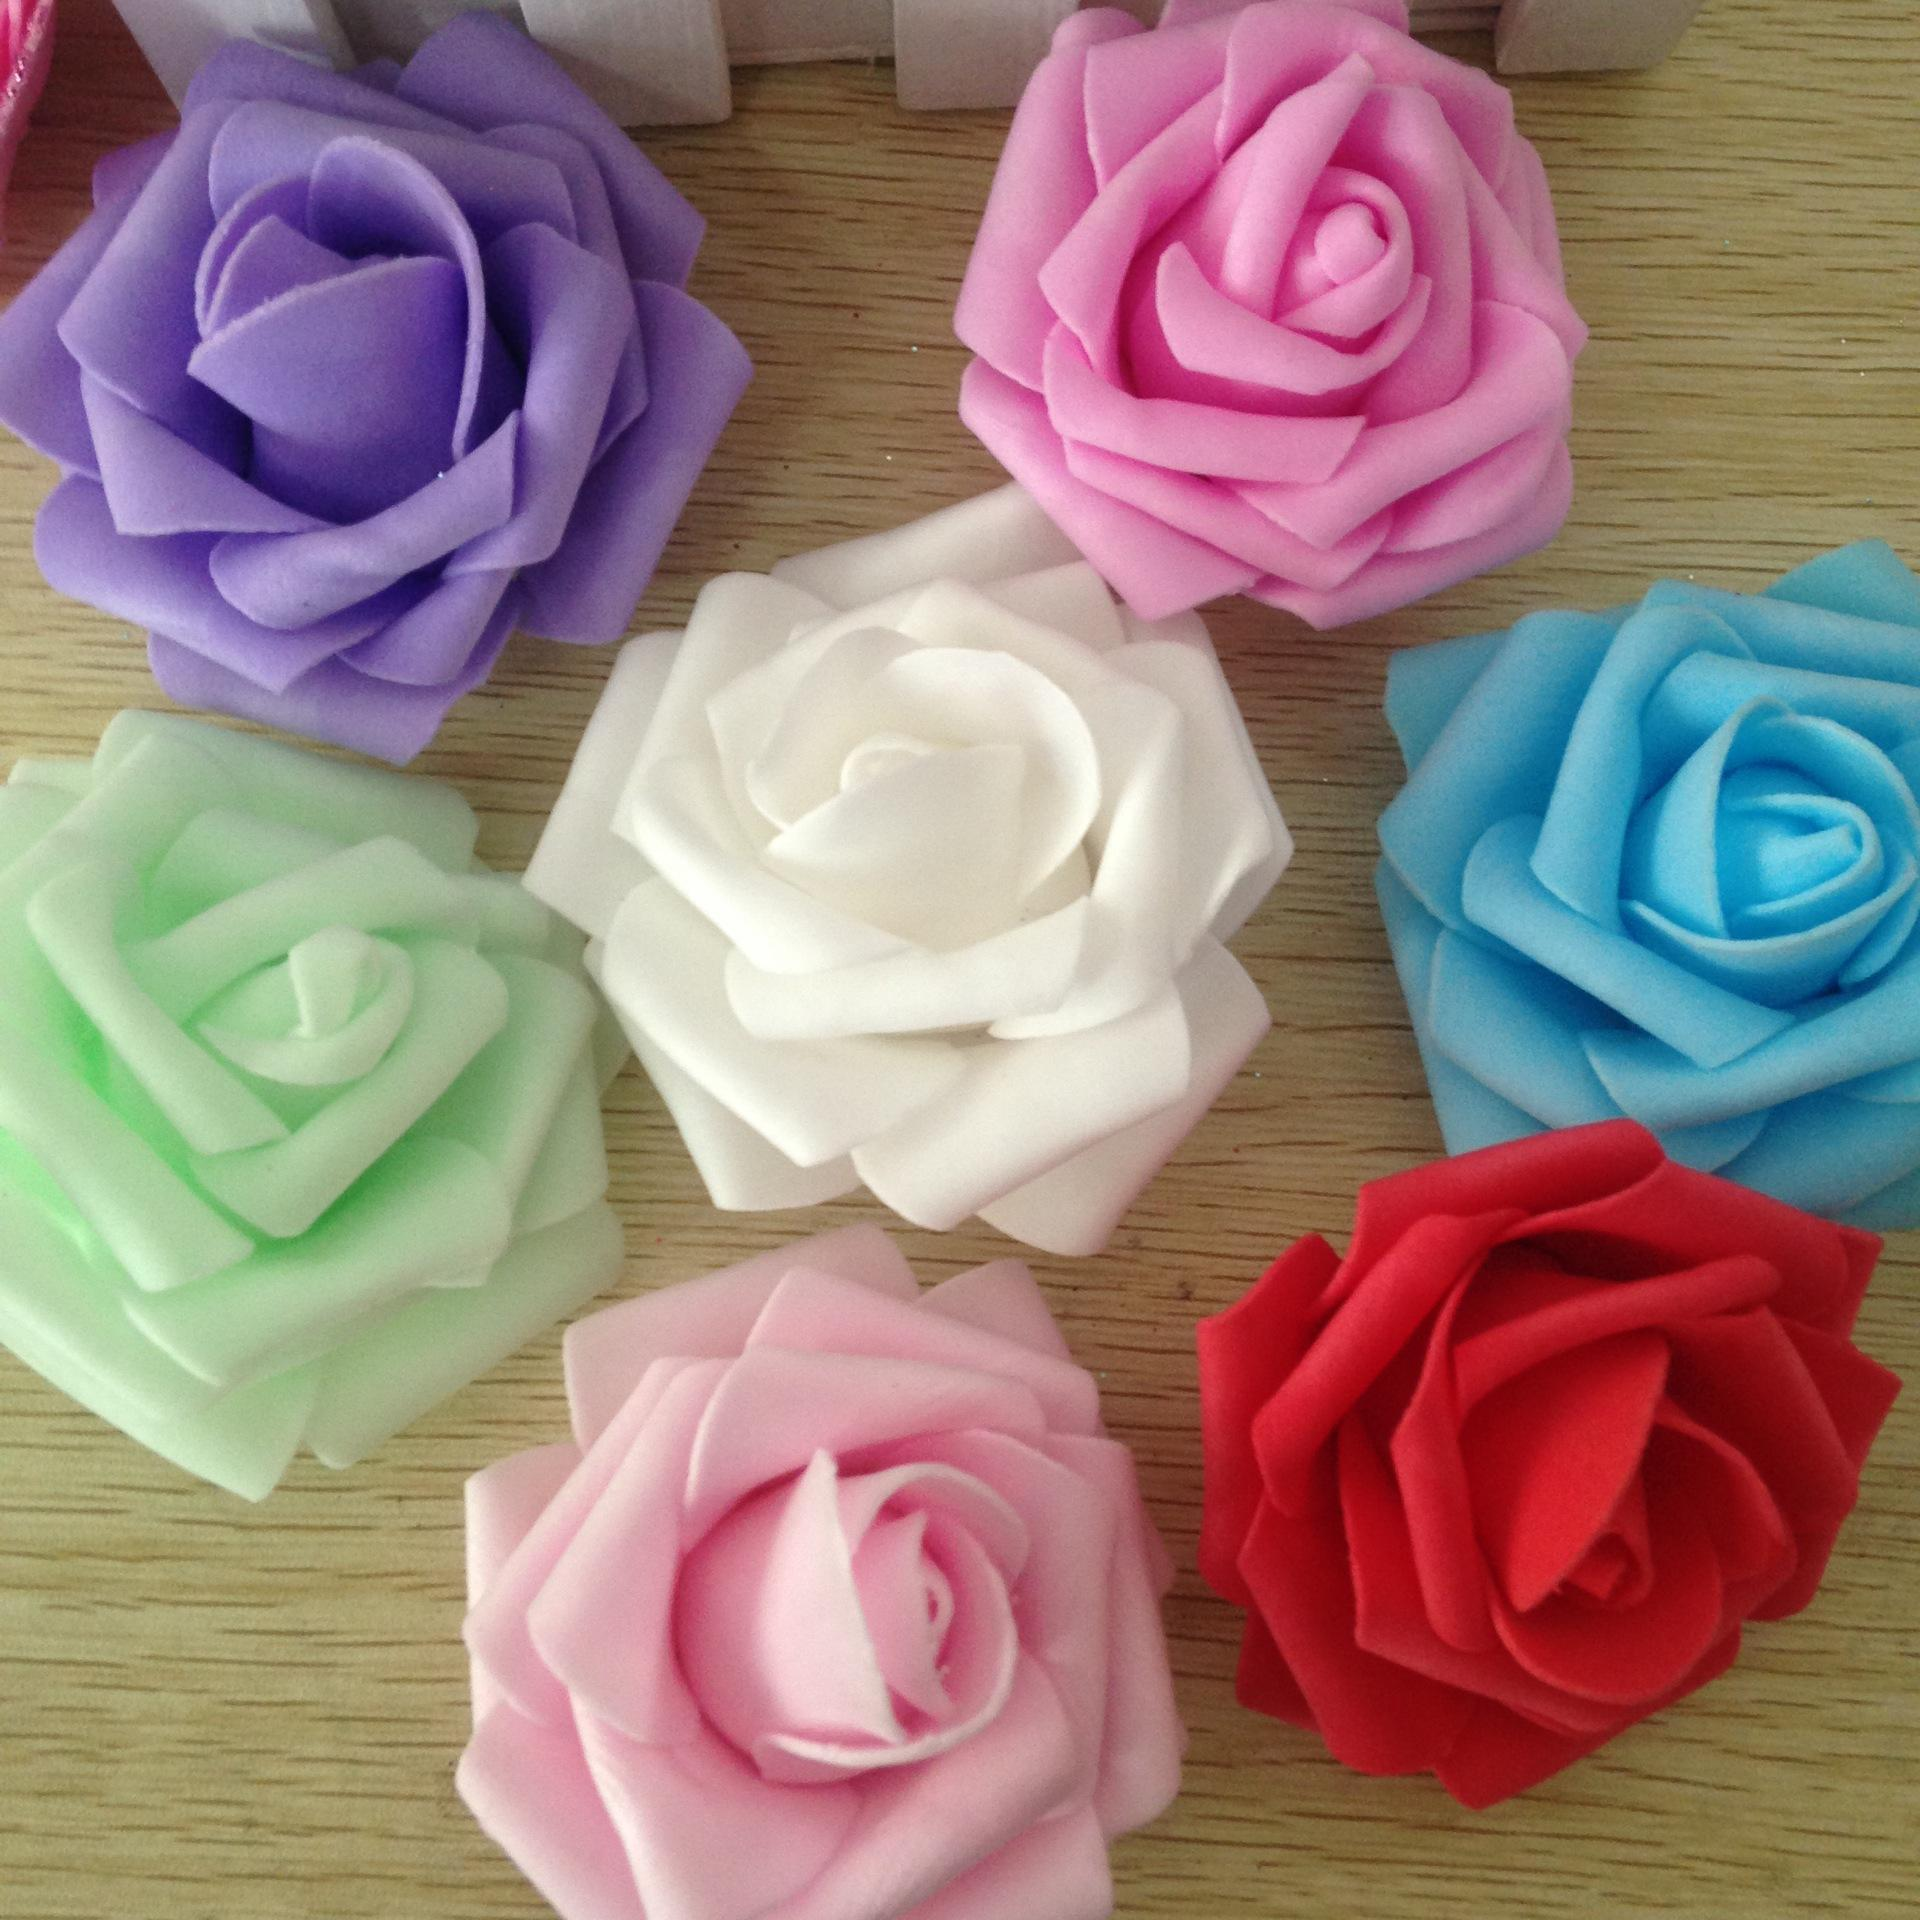 Wholesale 7CM Wedding Handmade Foam Rose rosebud Artificial Rose Flower Home Wedding Room Decoration 10colors (100pcs/Bag)